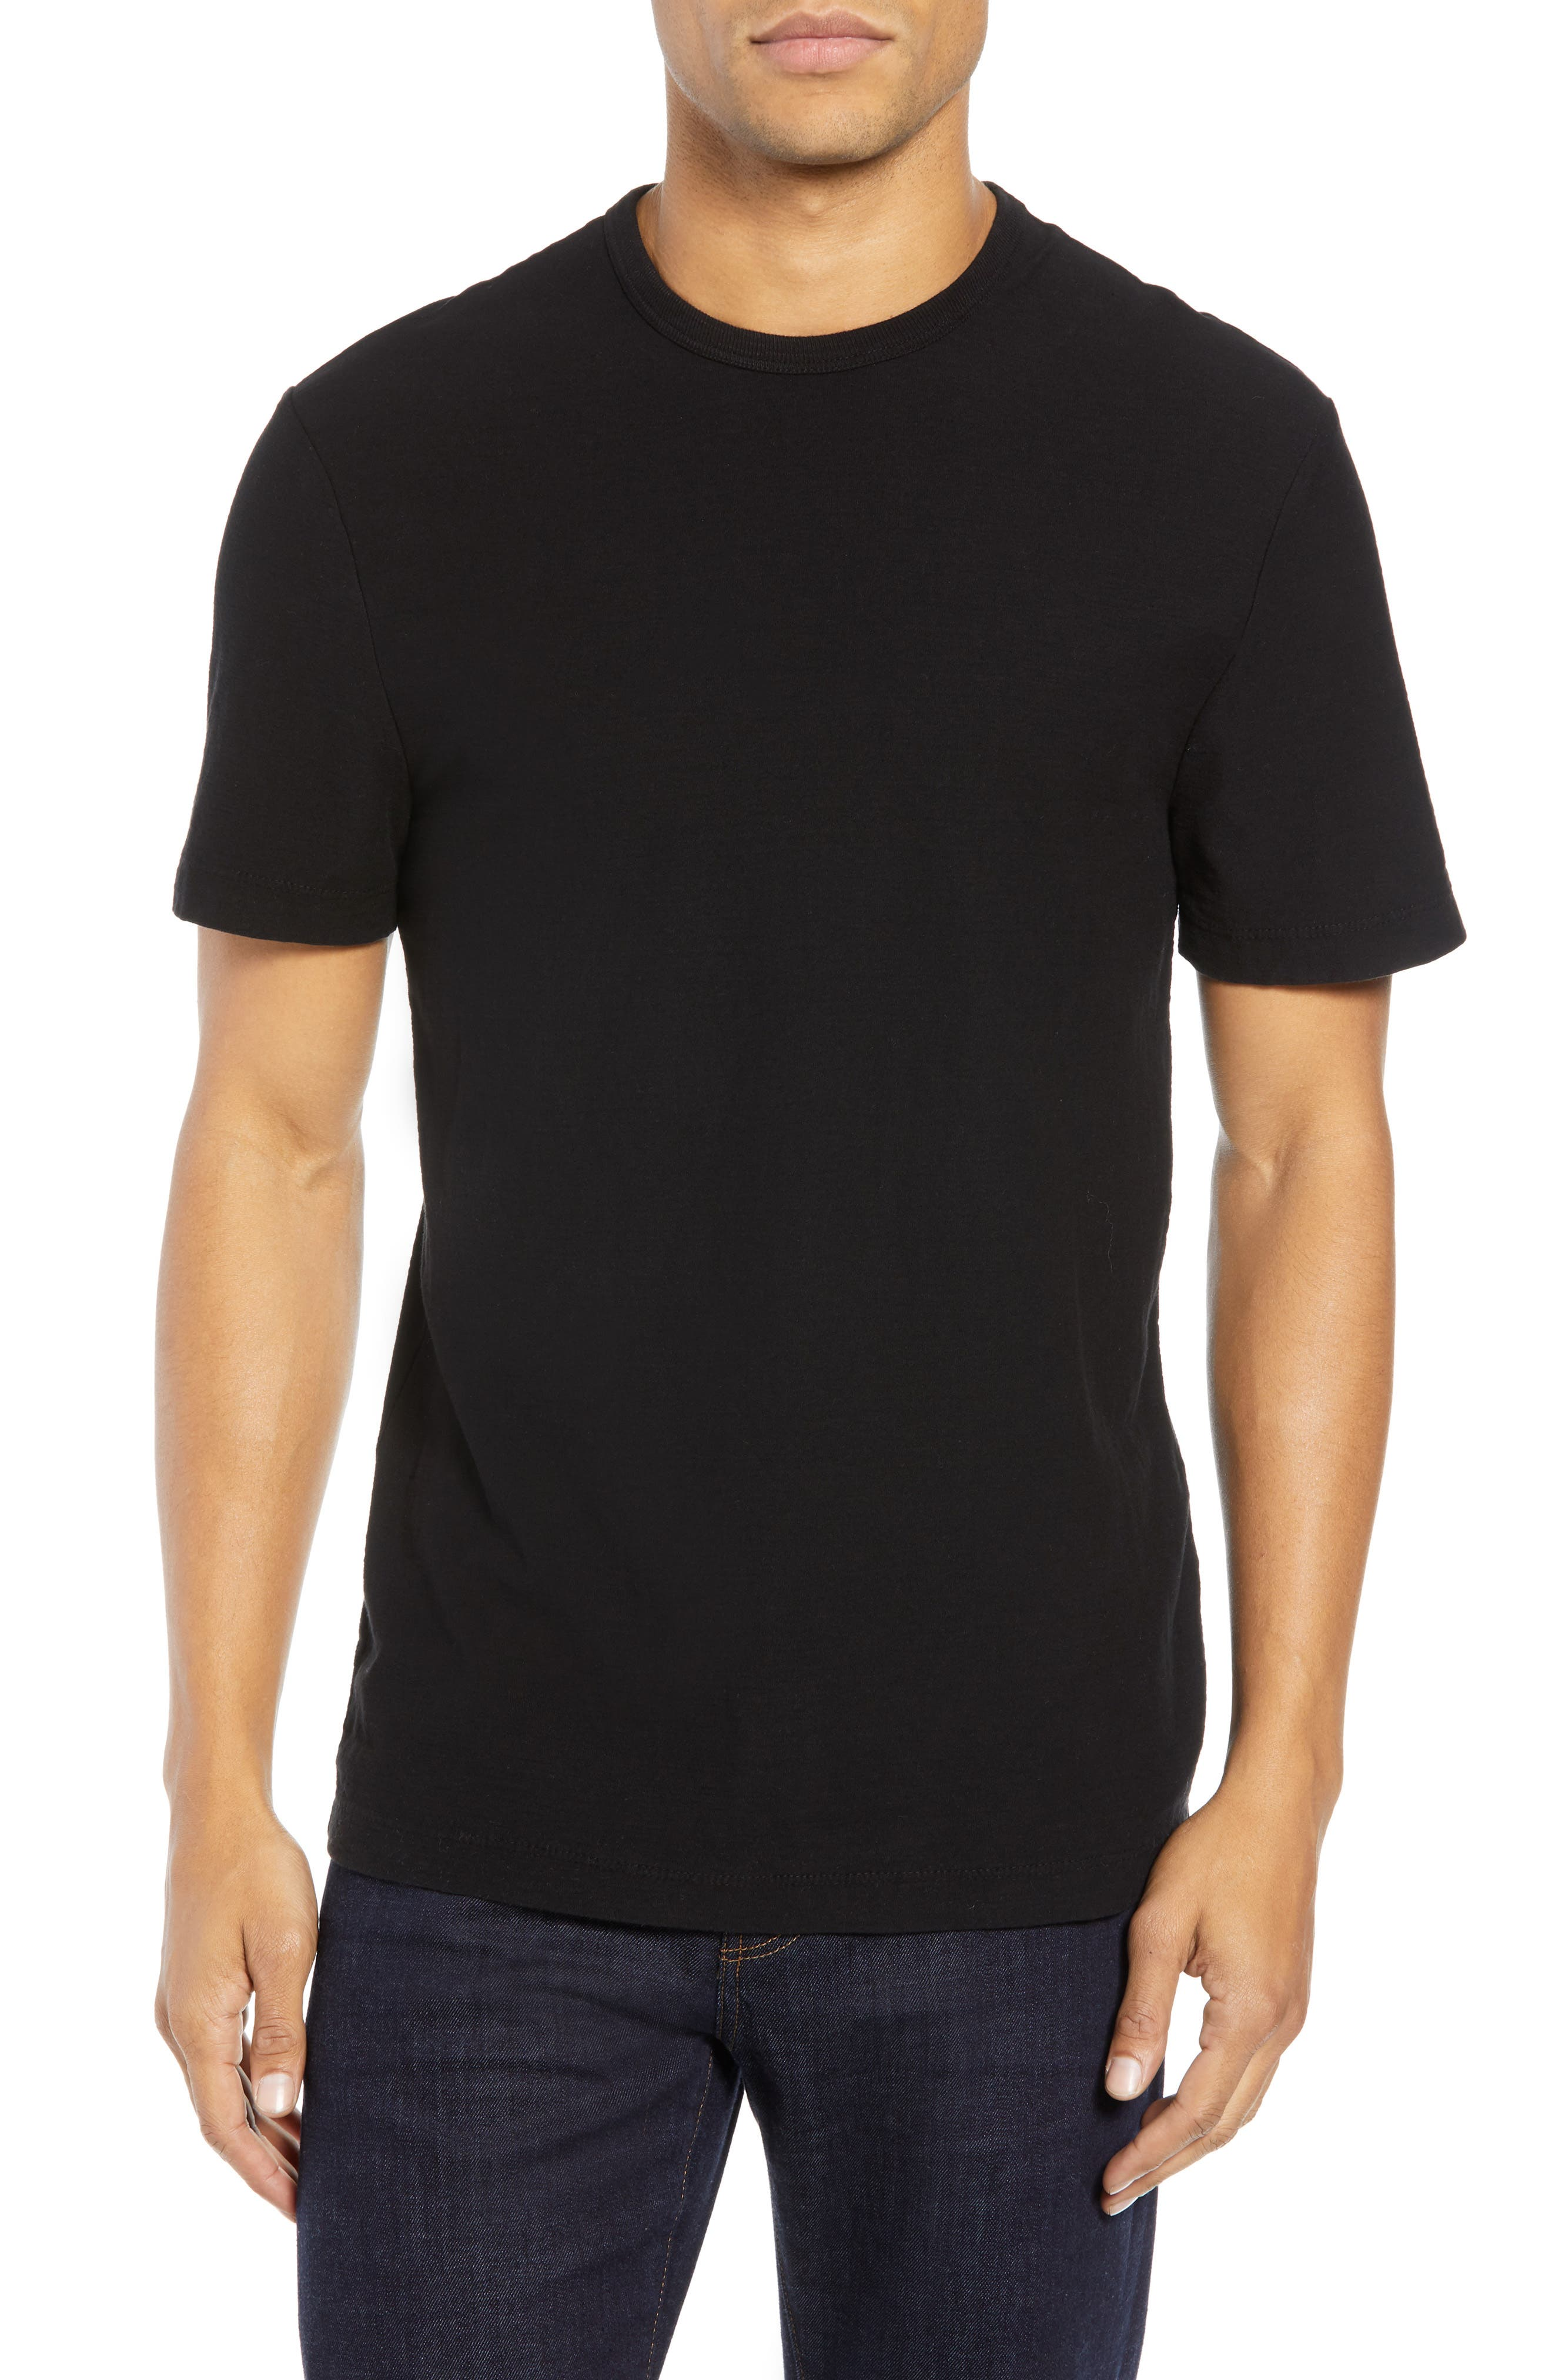 Microstripe Graphic T-Shirt,                             Main thumbnail 1, color,                             001